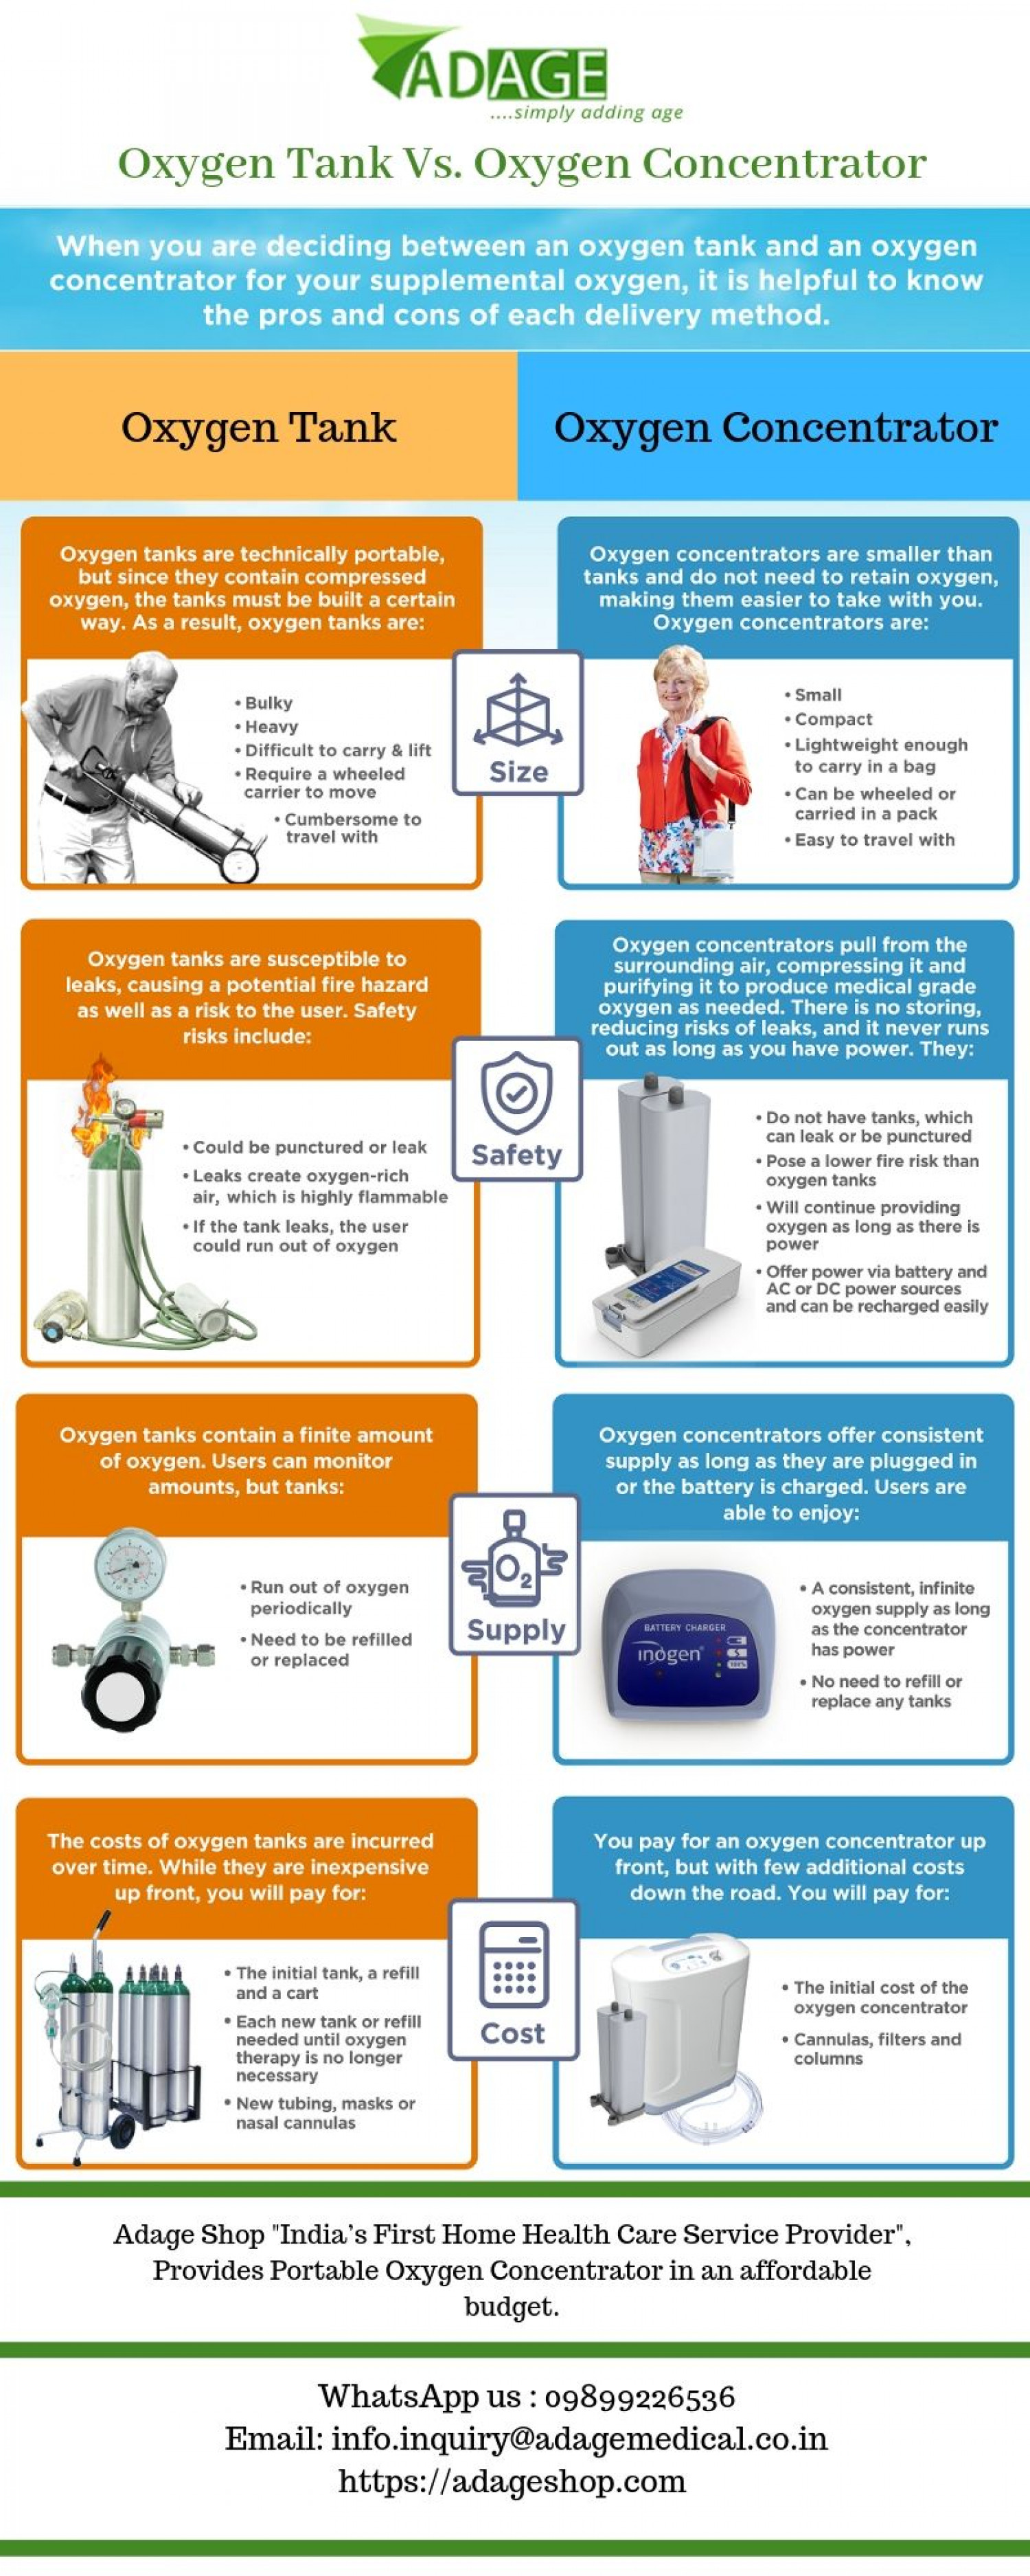 Oxygen Concentrator and Oxygen Tank Difference Infographic